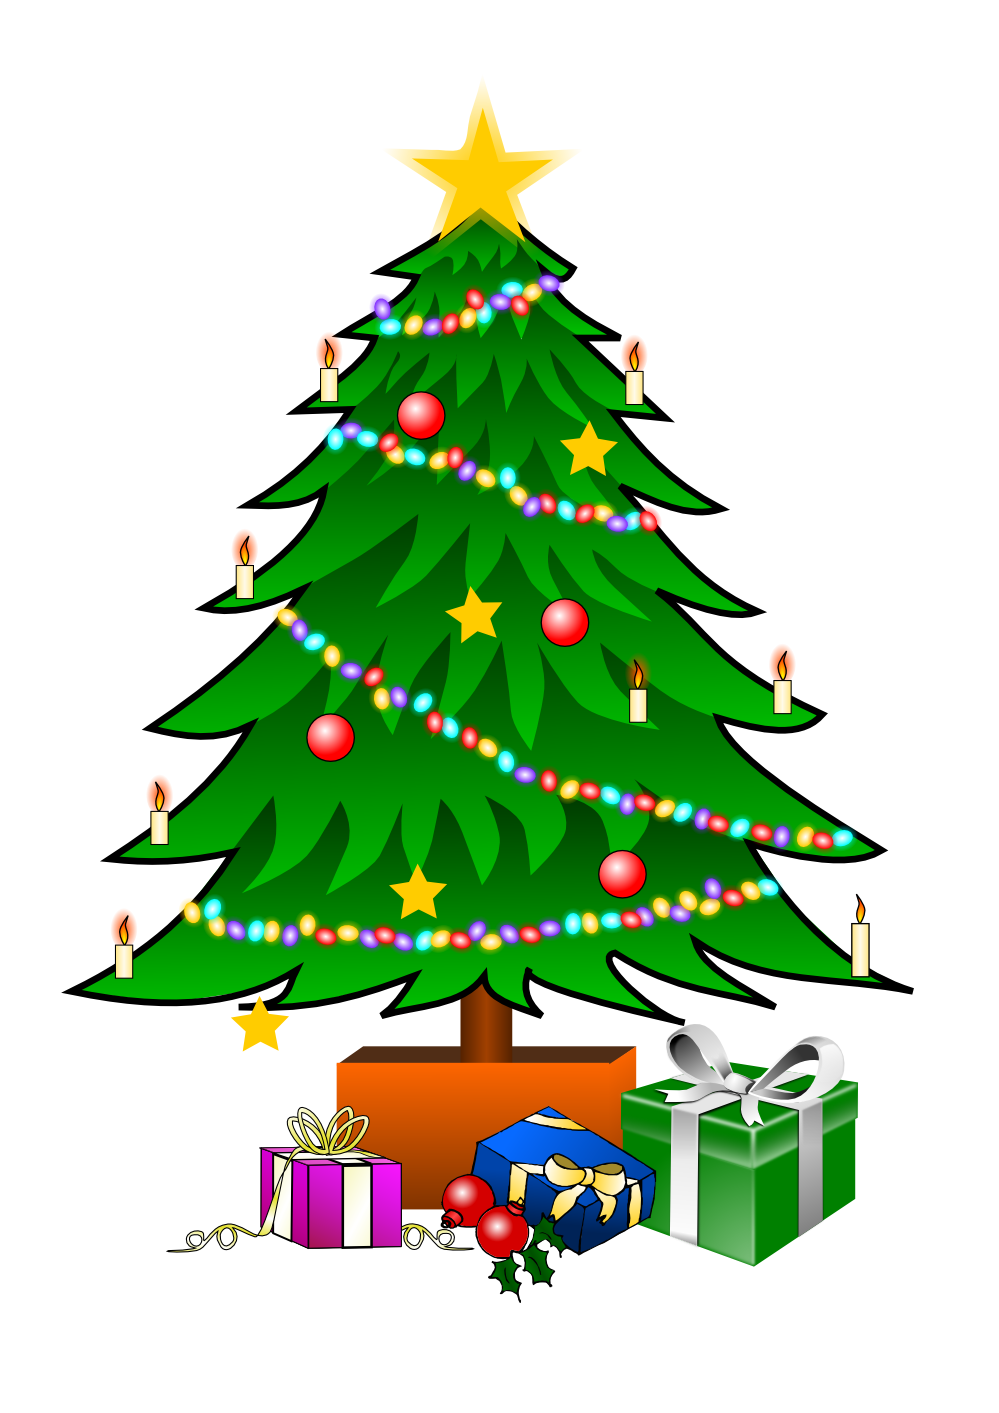 Funky christmas tree clipart banner freeuse stock This nice Christmas tree with presents clip art can be used for ... banner freeuse stock